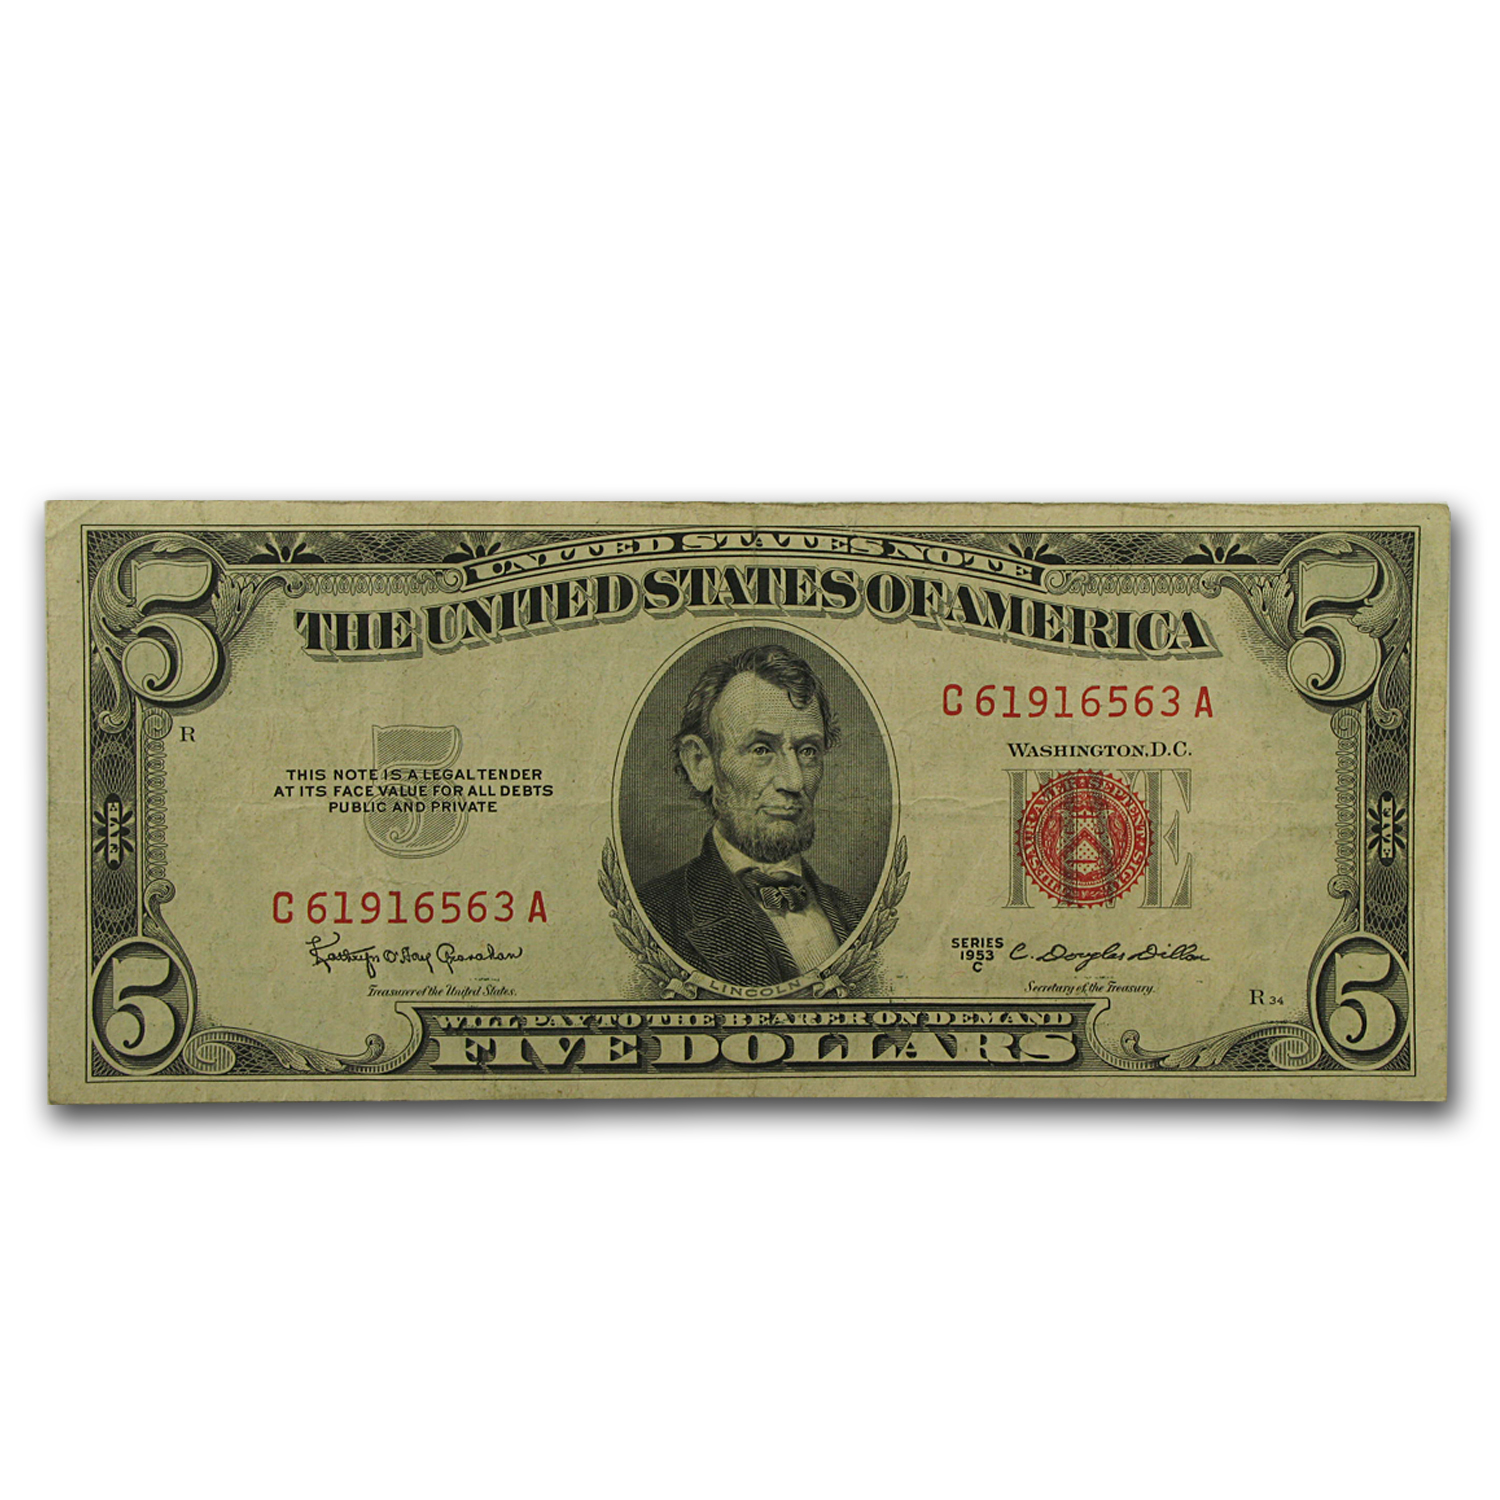 1953 $5.00 U.S. Note Red Seal VG/VF